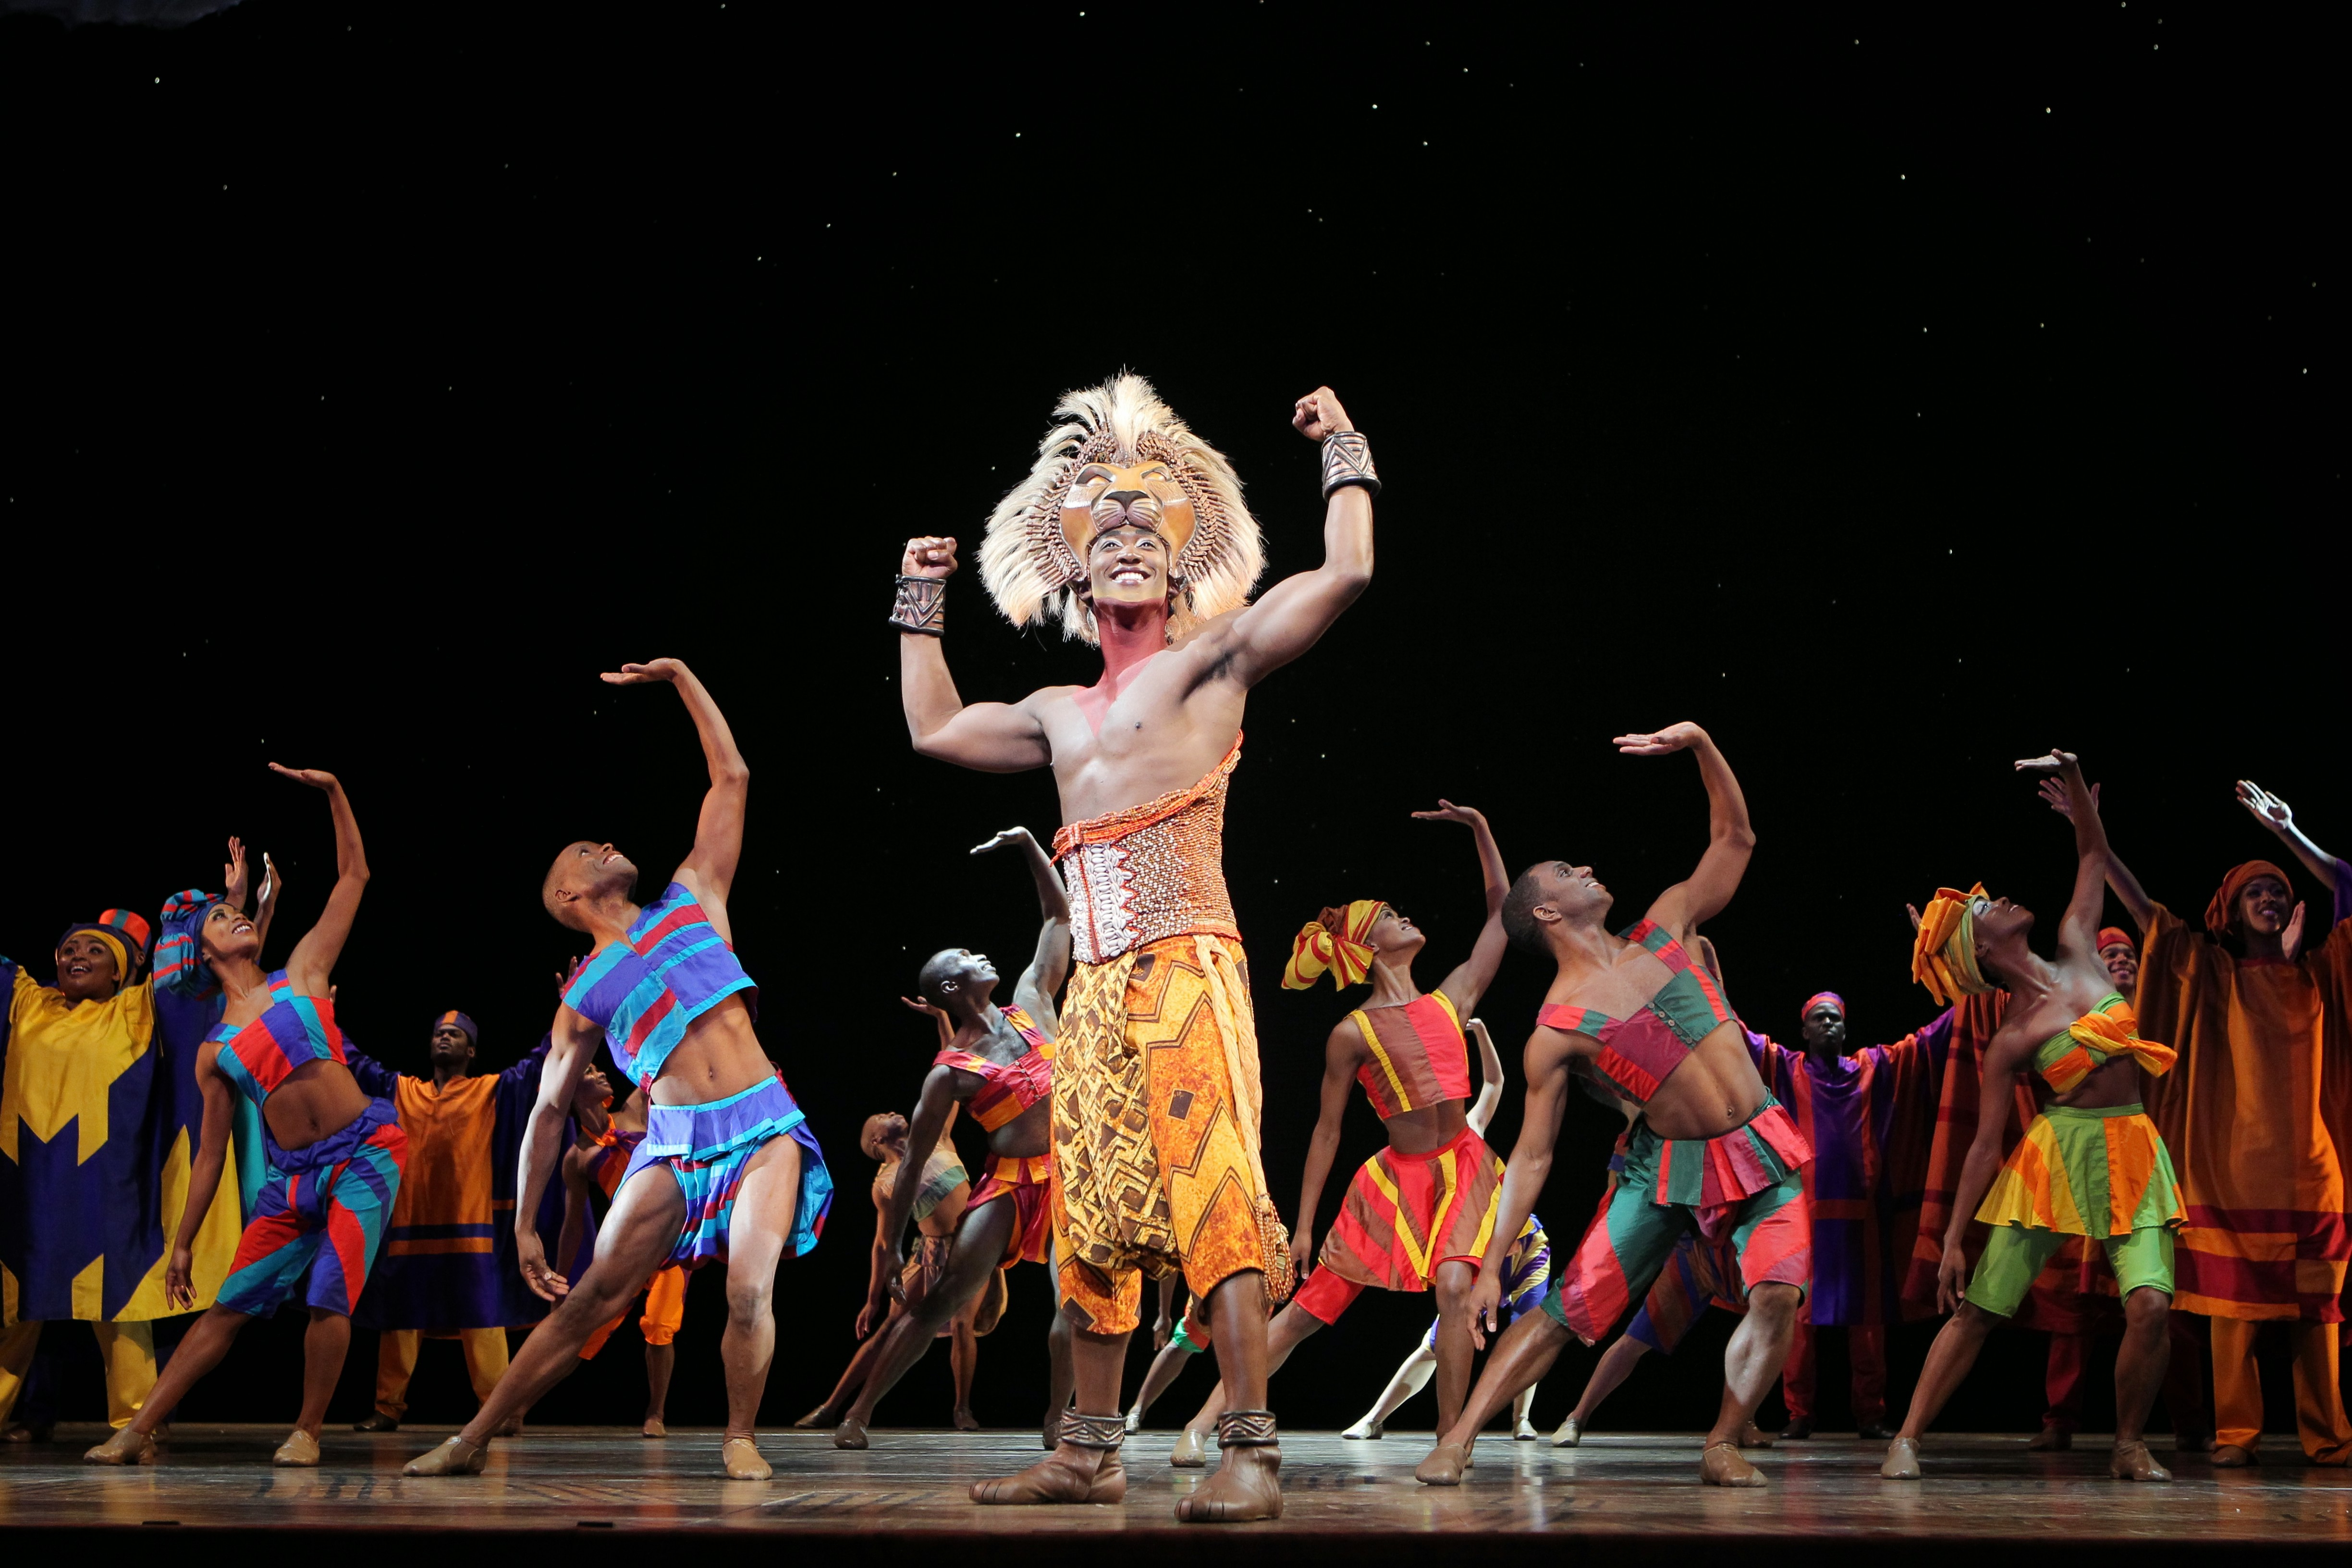 Broadway In  Chicago Announces The Return of Disney's THE LION KING Dec. 2 -Jan 17 at the Cadillac Palace 1 Broadway In Chicago is thrilled to announce that Disney's THE LION KING will return to Chicago by popular demand. This exclusive seven-week return engagement at the Cadillac Palace Theatre (151 W Randolph) begins December 2, 2015 and plays through January 17, 2016.